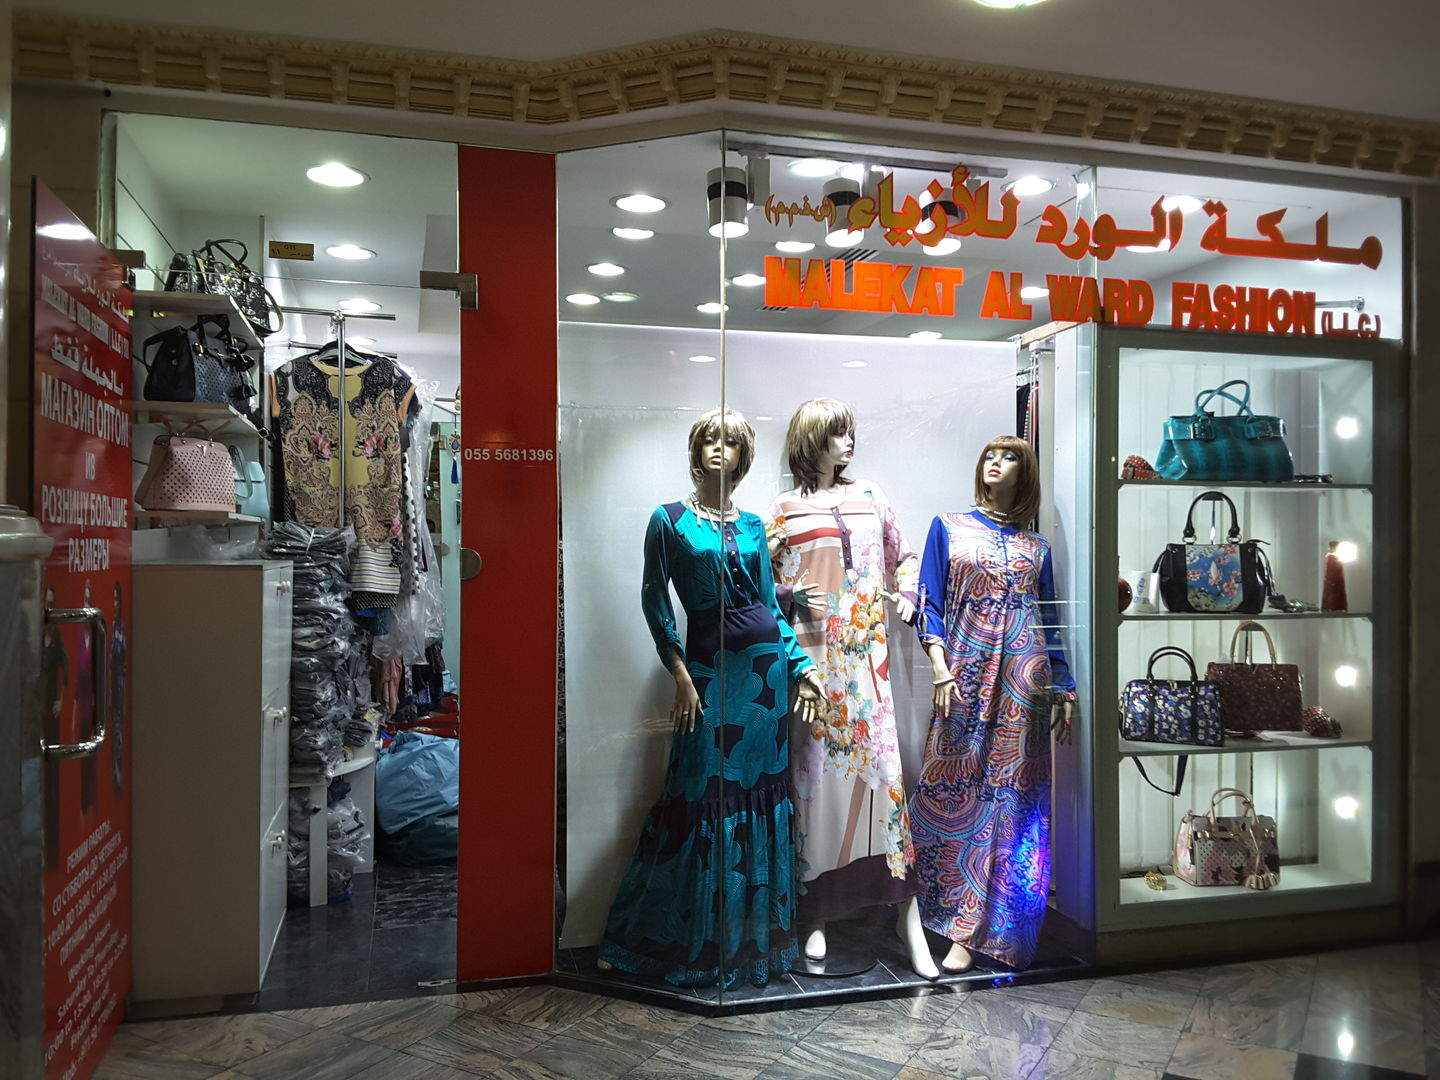 HiDubai-business-malekat-al-ward-fashion-shopping-apparel-baniyas-square-dubai-2